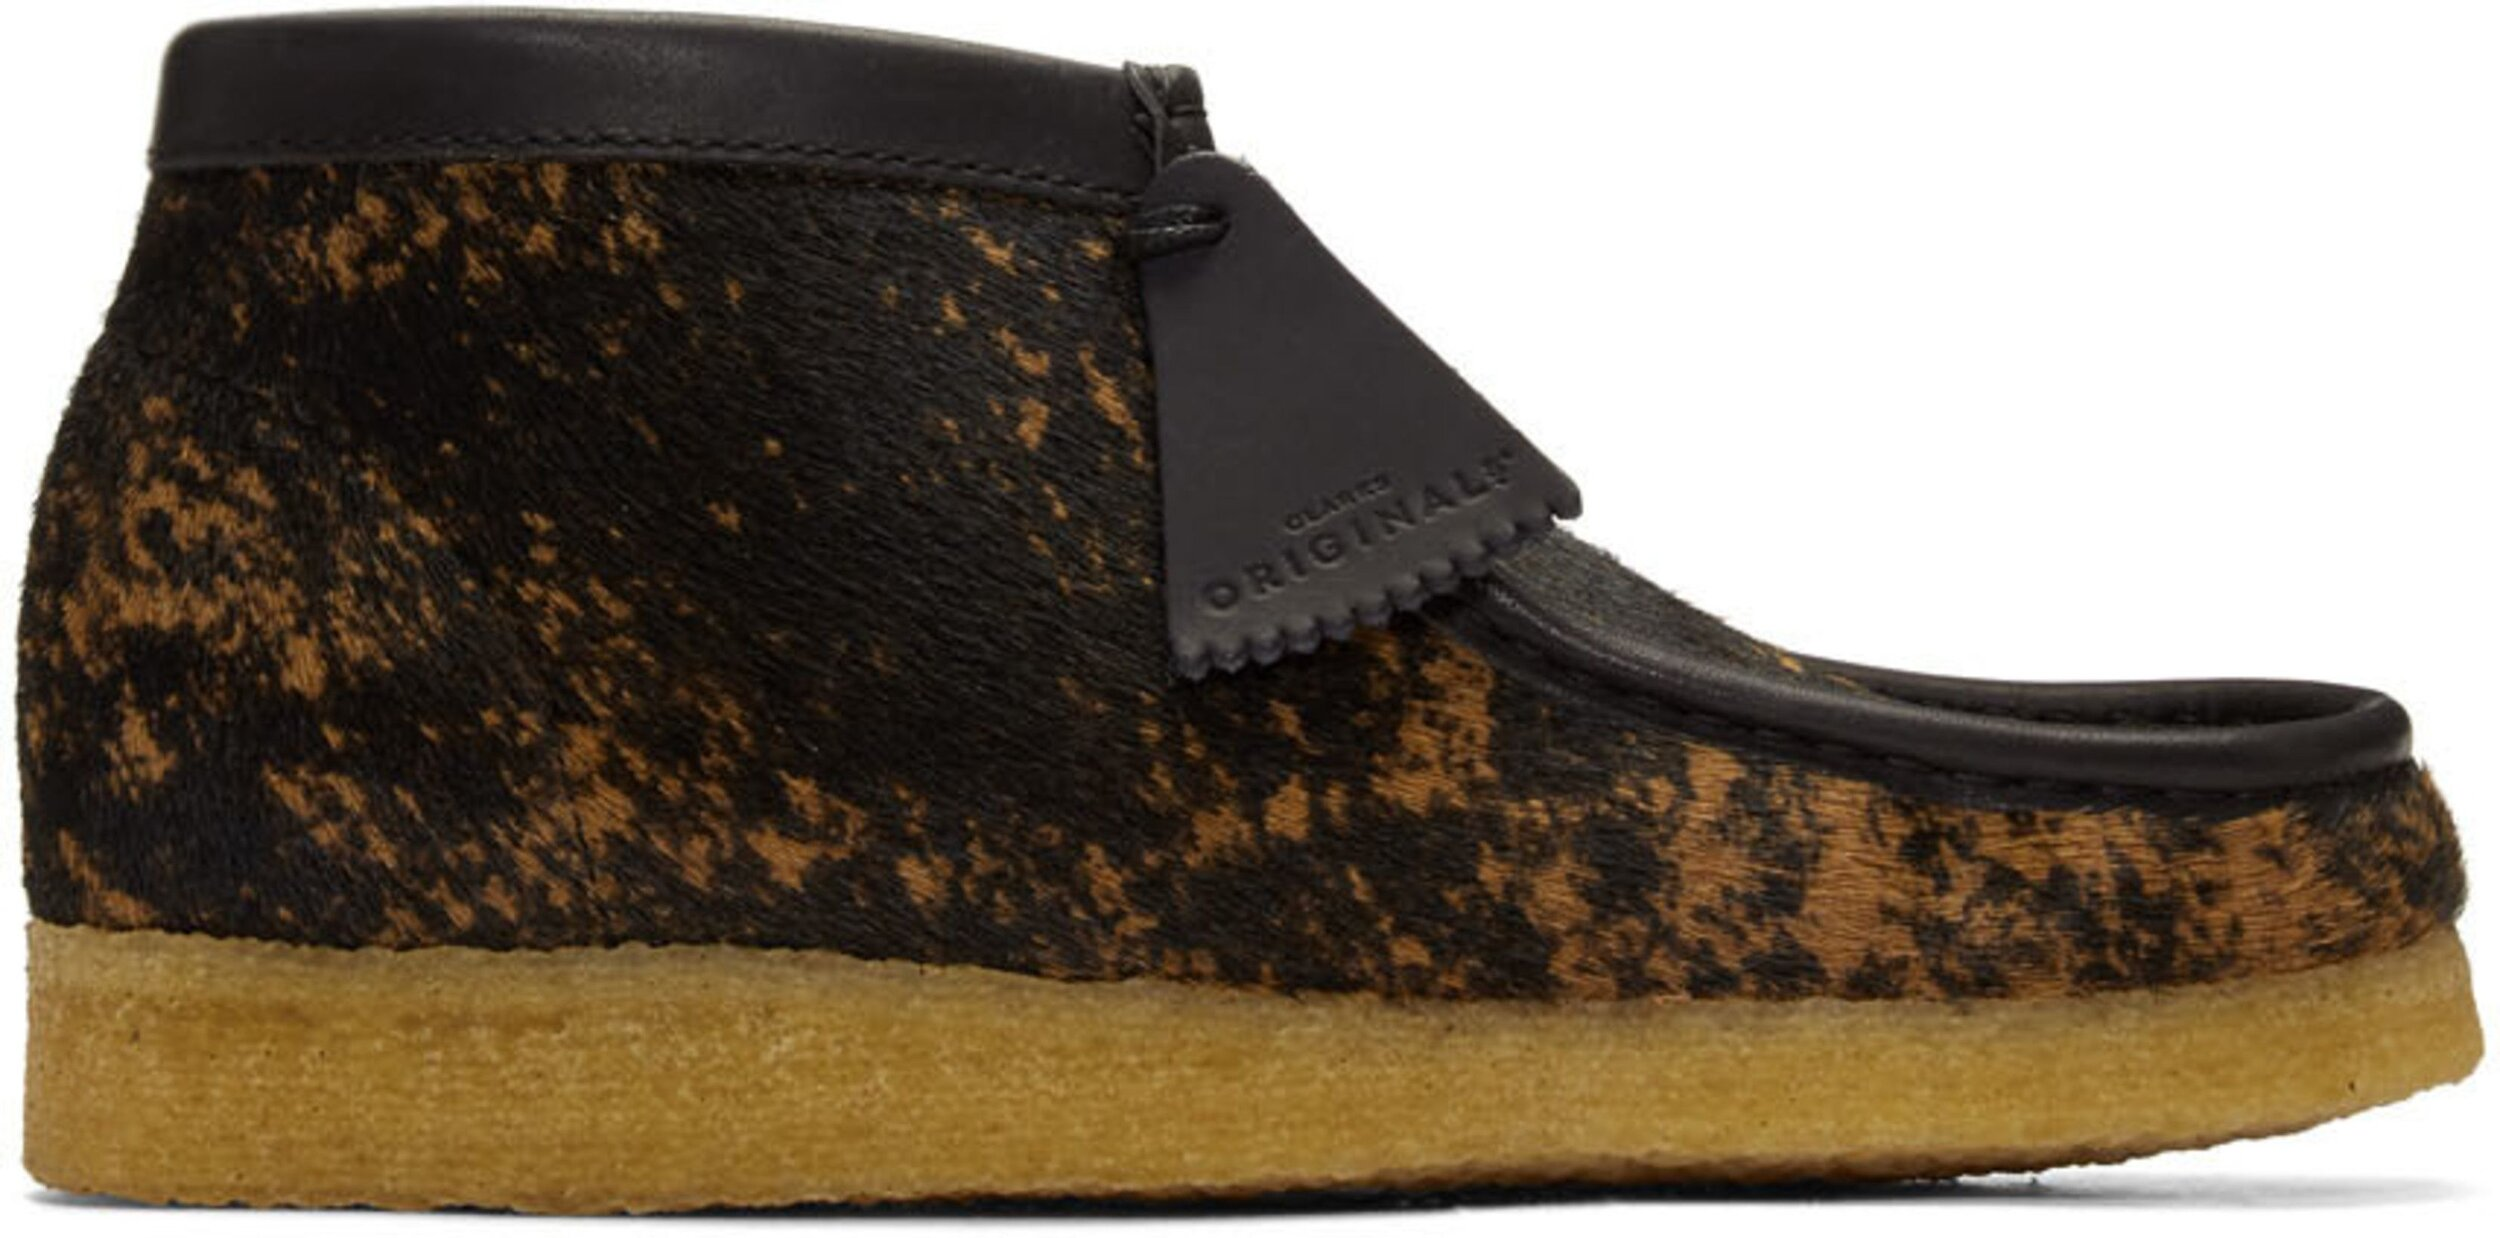 Clarks Originals Wallabees On Sale For